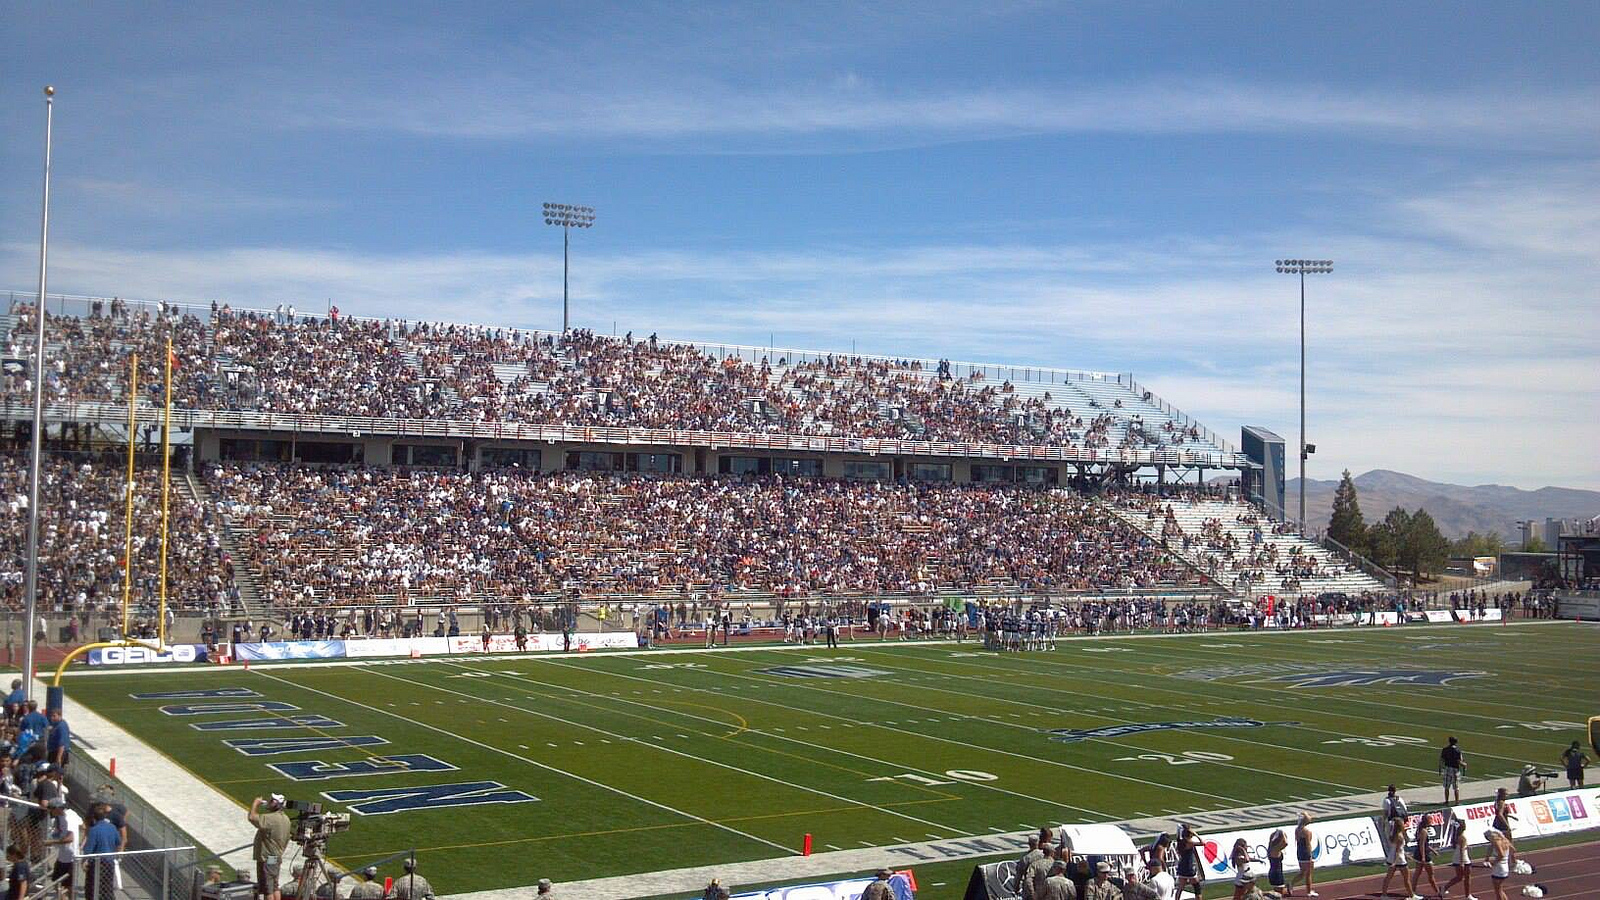 MacKay Stadium, home of the Nevada Wolfpack